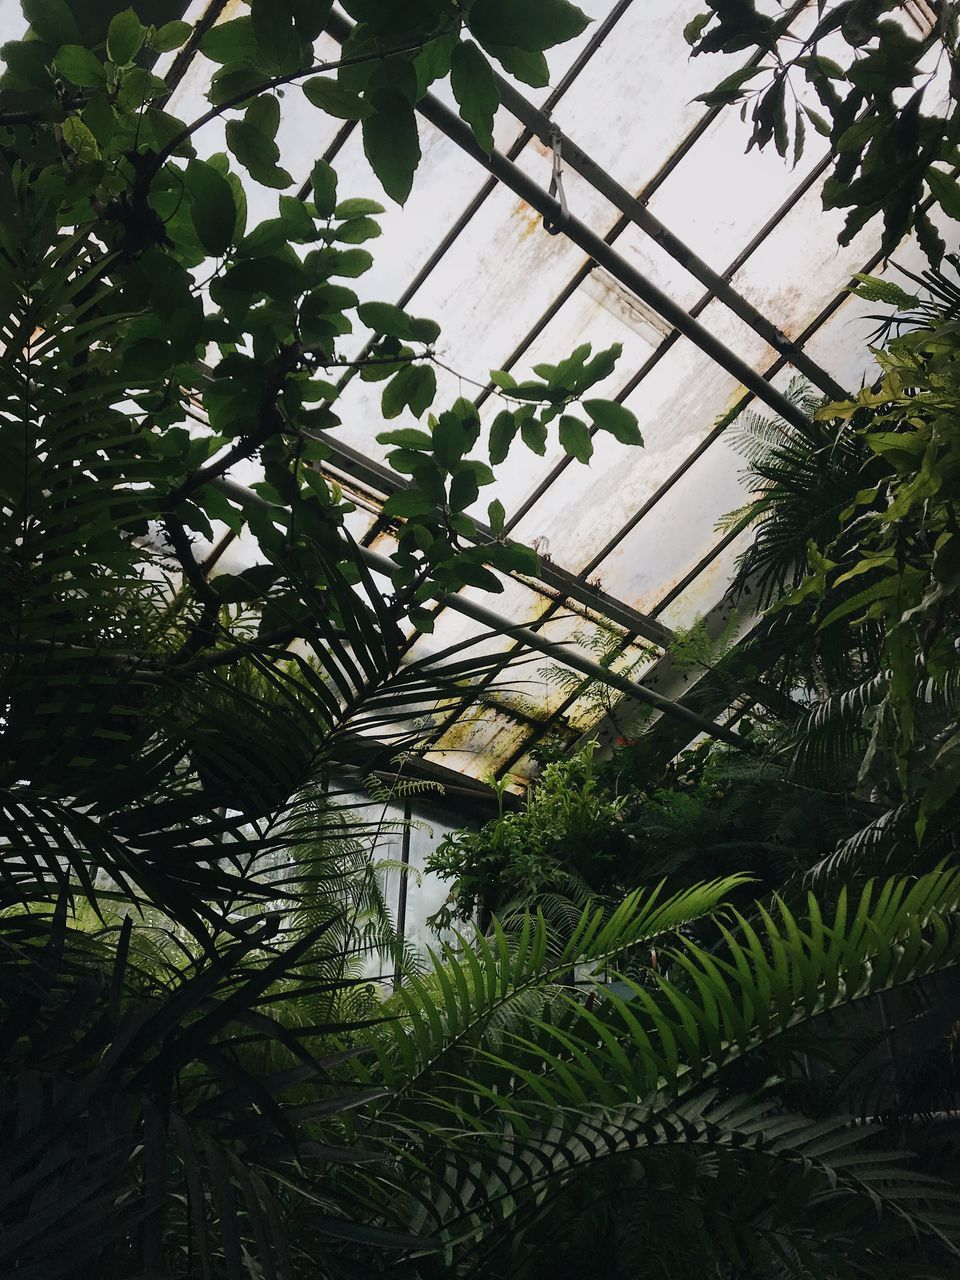 LOW ANGLE VIEW OF TREE IN GREENHOUSE